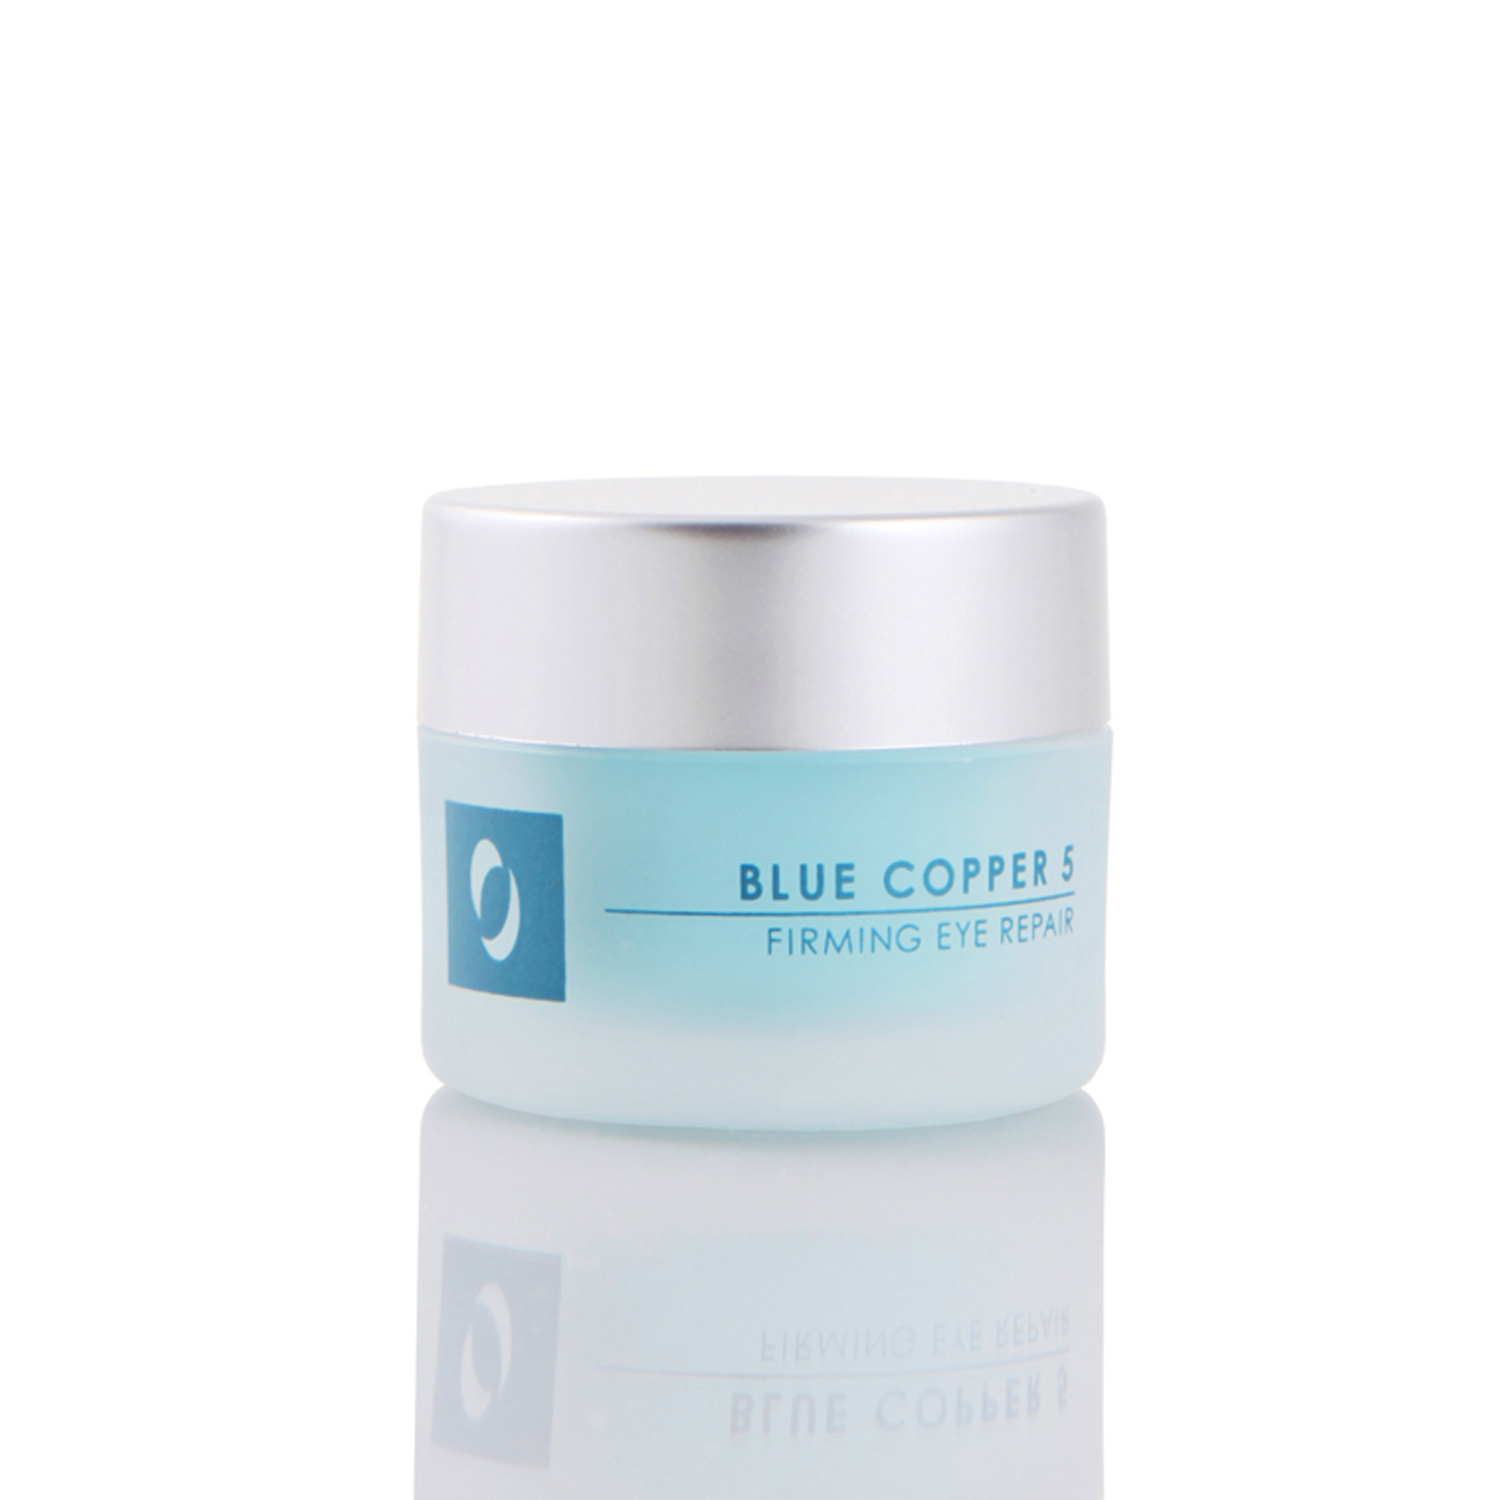 Osmotics BLUE COPPER 5 FIRMING EYE REPAIR (0.5 oz / 15 ml)